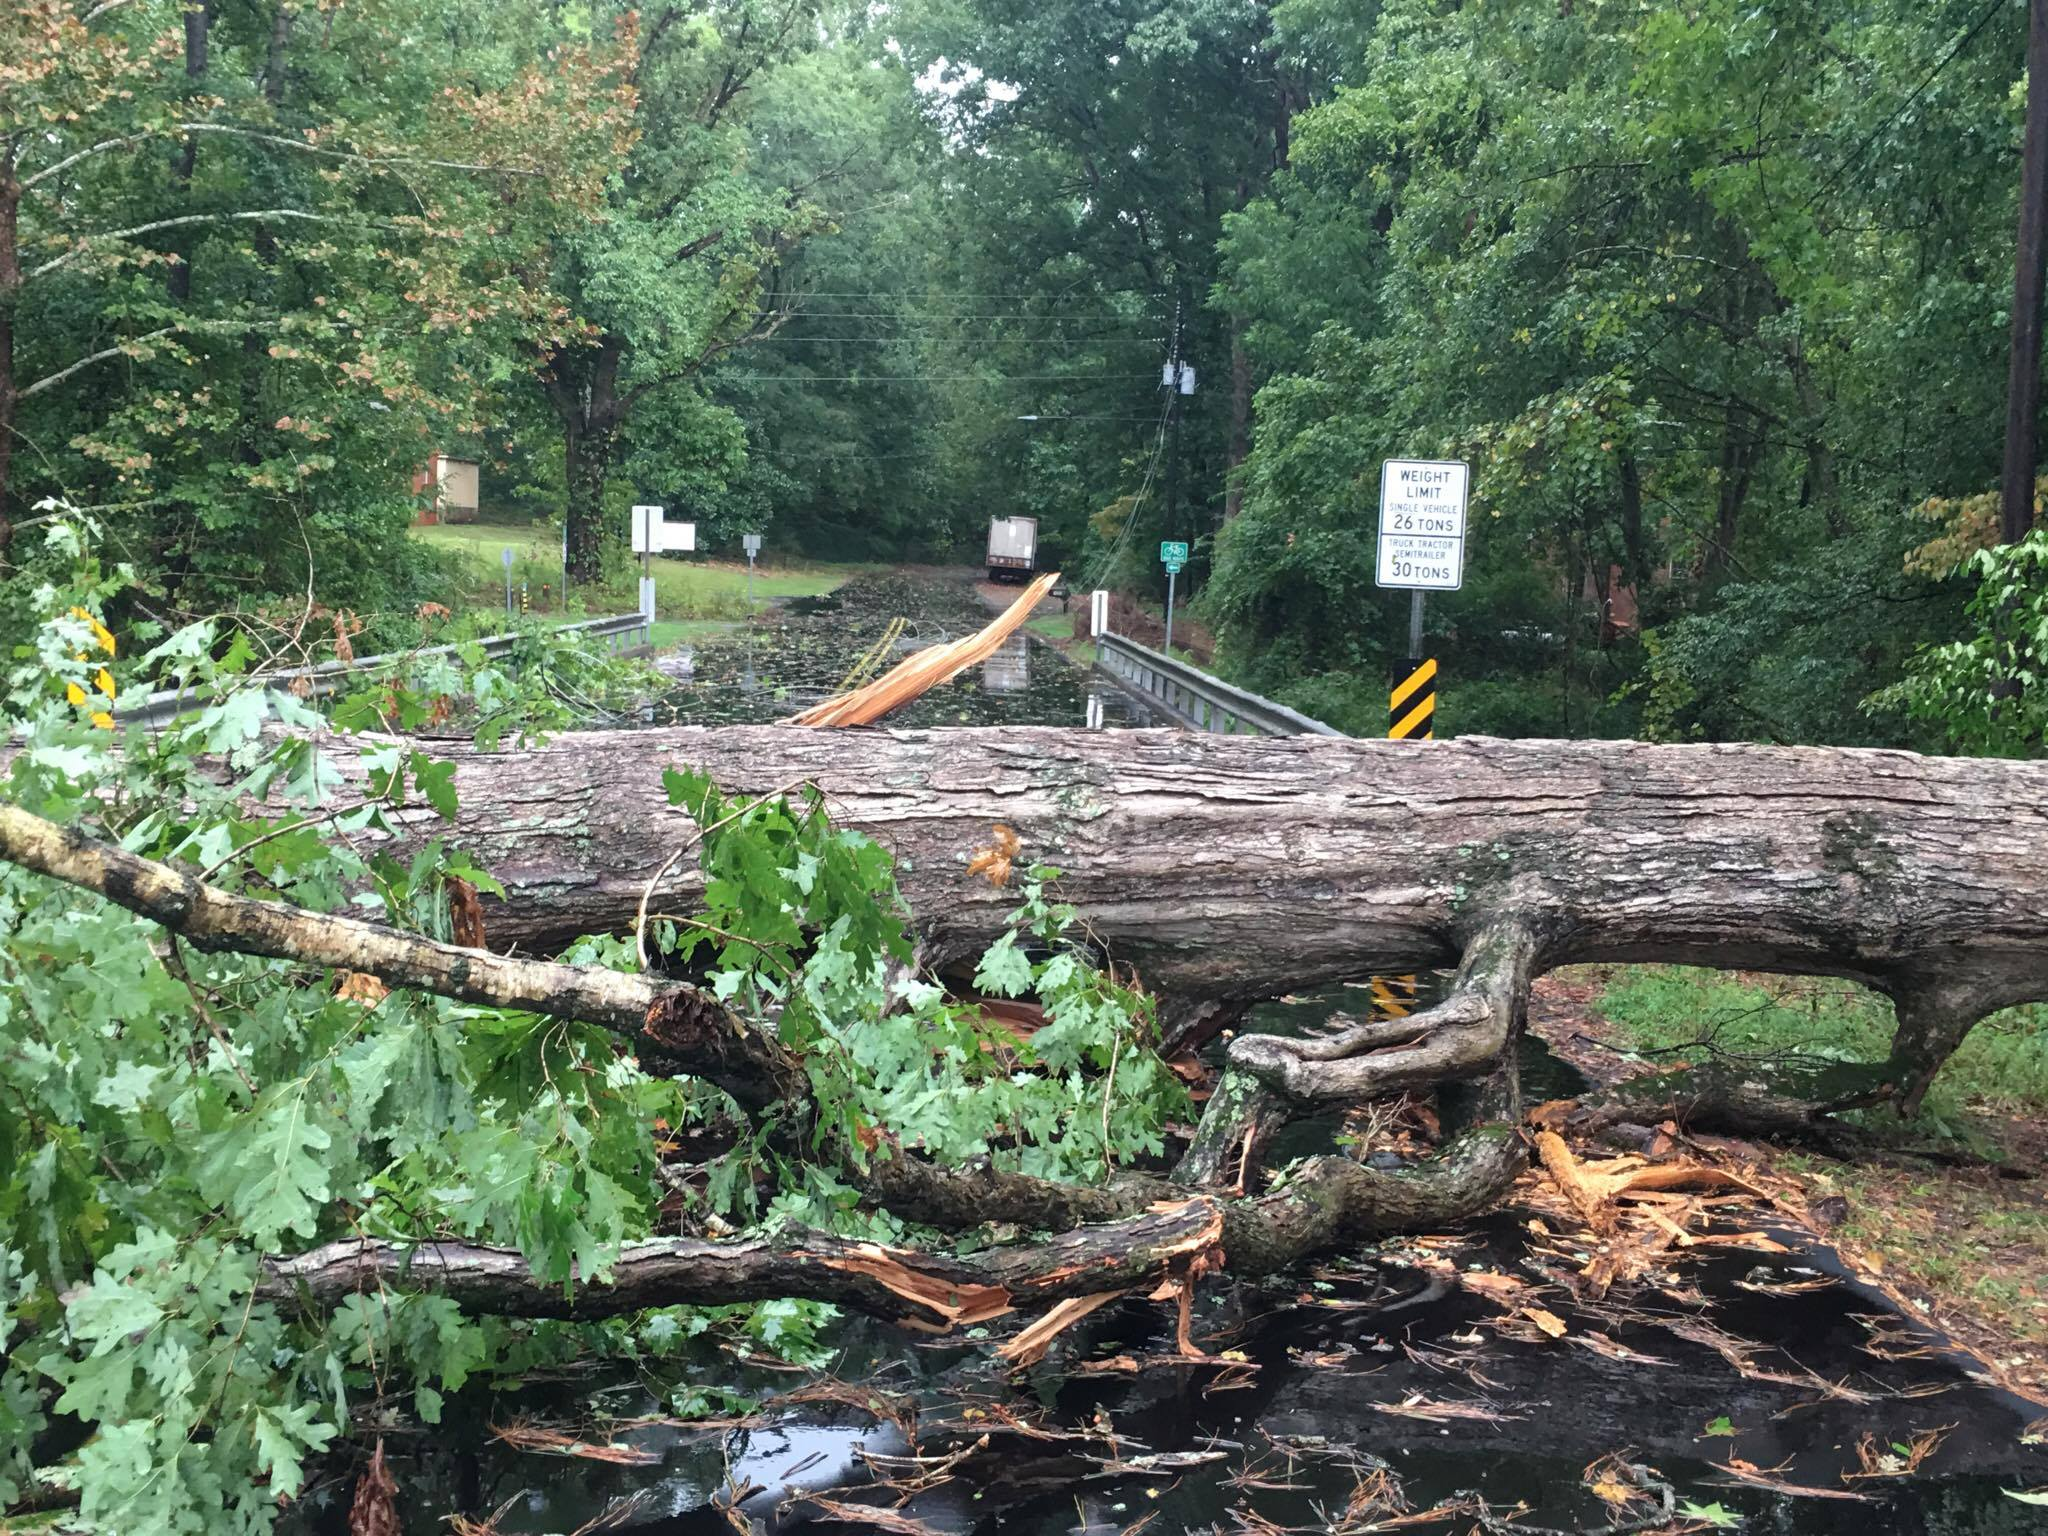 "<div class=""meta image-caption""><div class=""origin-logo origin-image wtvd""><span>WTVD</span></div><span class=""caption-text"">A huge tree blocks the roadway in Sanford. (Kimberly Nation)</span></div>"